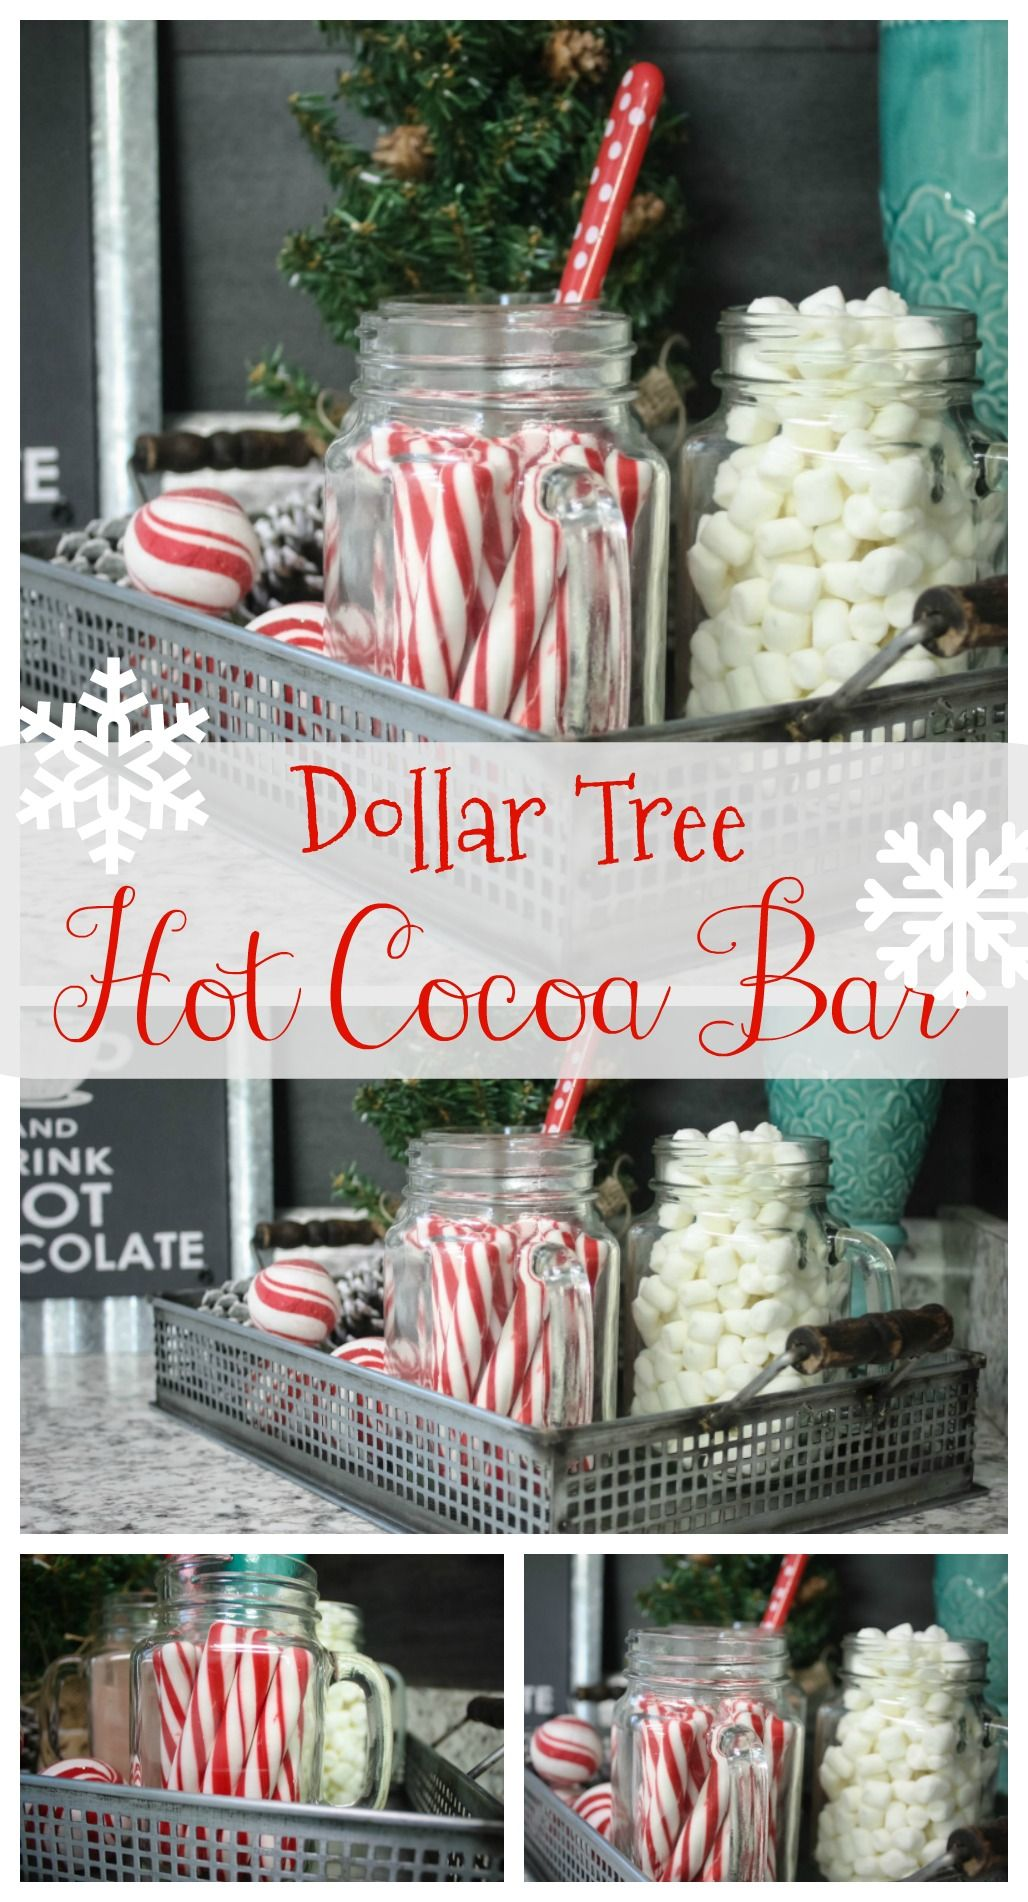 Dollar Tree Hot Cocoa Bar - Re-Fabbed